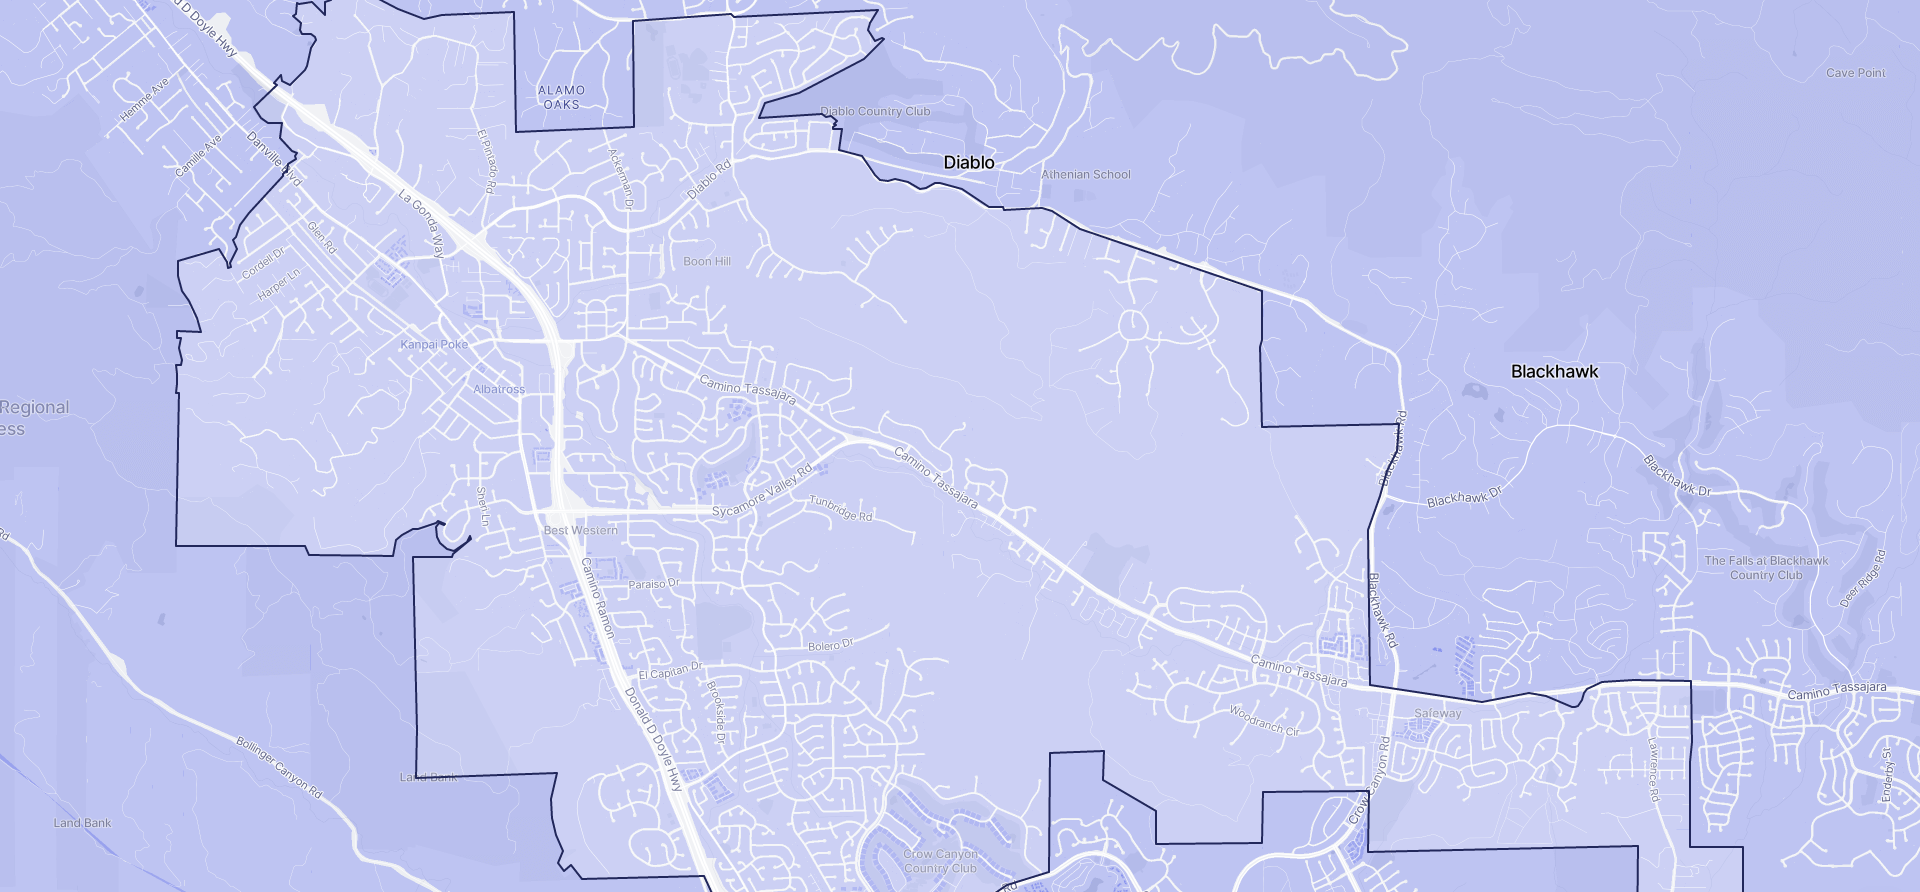 Image of Danville boundaries on a map.